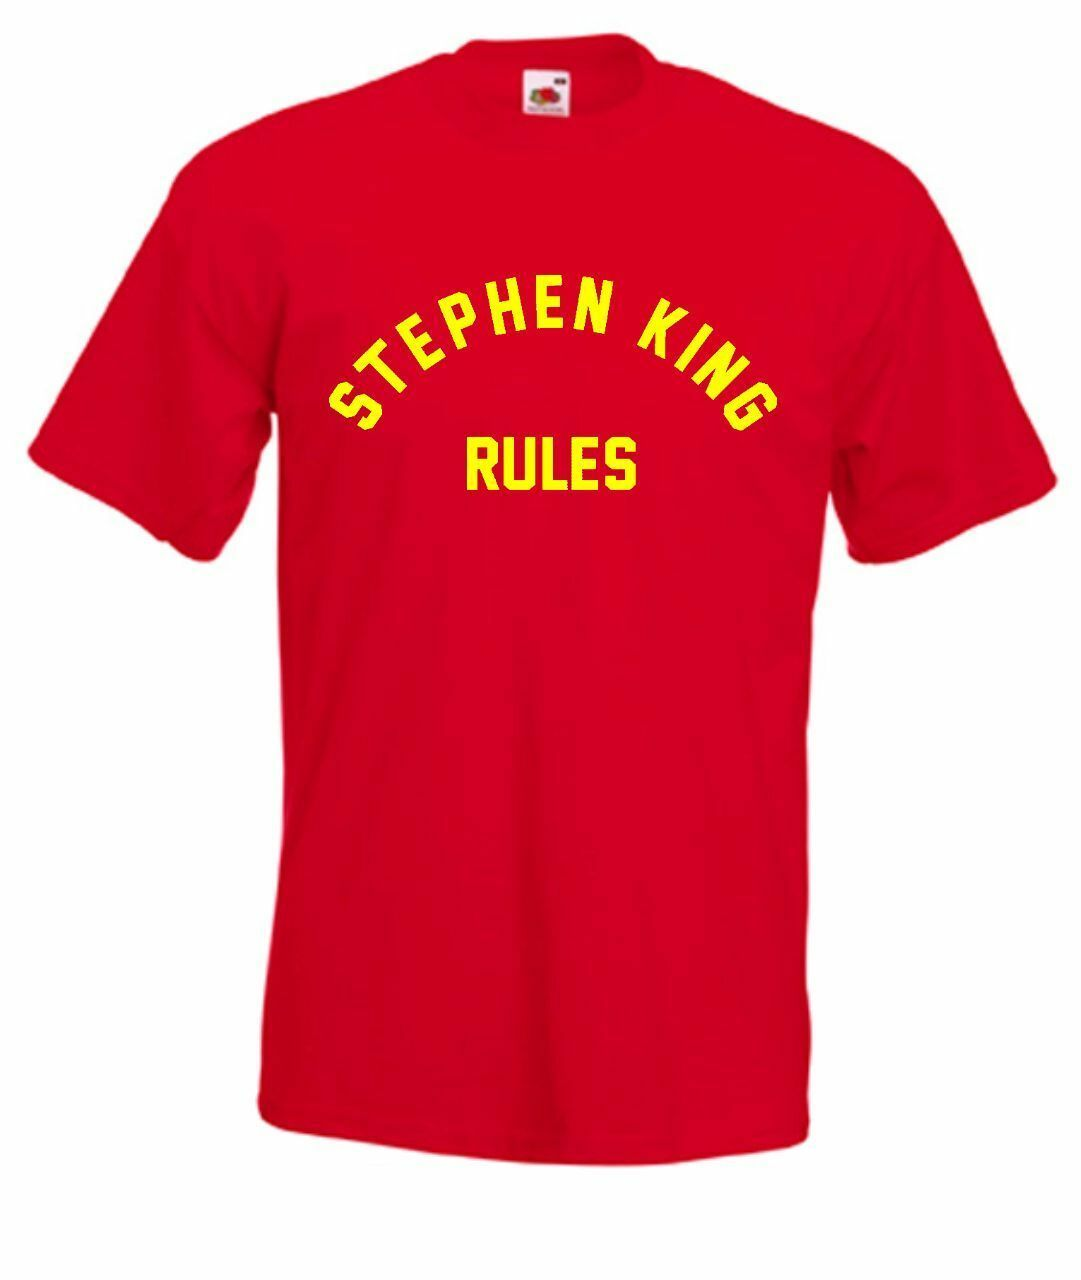 2019 Cool Stephen King Rules Monster Squad 80S Movie T Shirt Unisex Tee